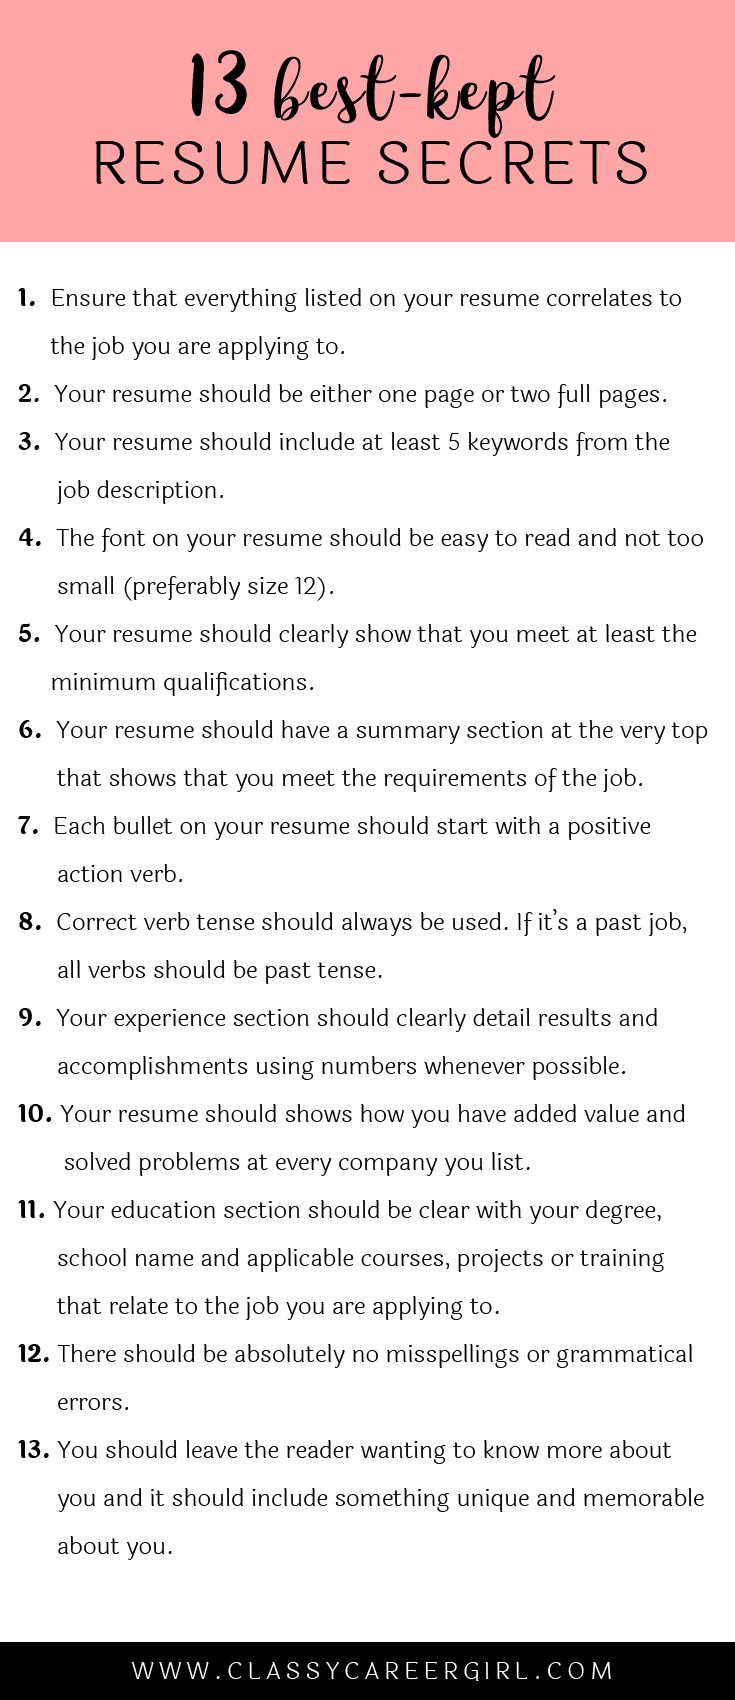 Opposenewapstandardsus  Surprising  Ideas About Resume On Pinterest  Cv Format Resume Cv And  With Fetching Some Hiring Managers Will Toss Your Resume Out If You Dont Know These  With Delightful Acting Resume Templates Also Create Your Resume In Addition Careerbuilder Resume Search And Example High School Resume As Well As Posting Resume On Indeed Additionally How To Name Your Resume From Pinterestcom With Opposenewapstandardsus  Fetching  Ideas About Resume On Pinterest  Cv Format Resume Cv And  With Delightful Some Hiring Managers Will Toss Your Resume Out If You Dont Know These  And Surprising Acting Resume Templates Also Create Your Resume In Addition Careerbuilder Resume Search From Pinterestcom